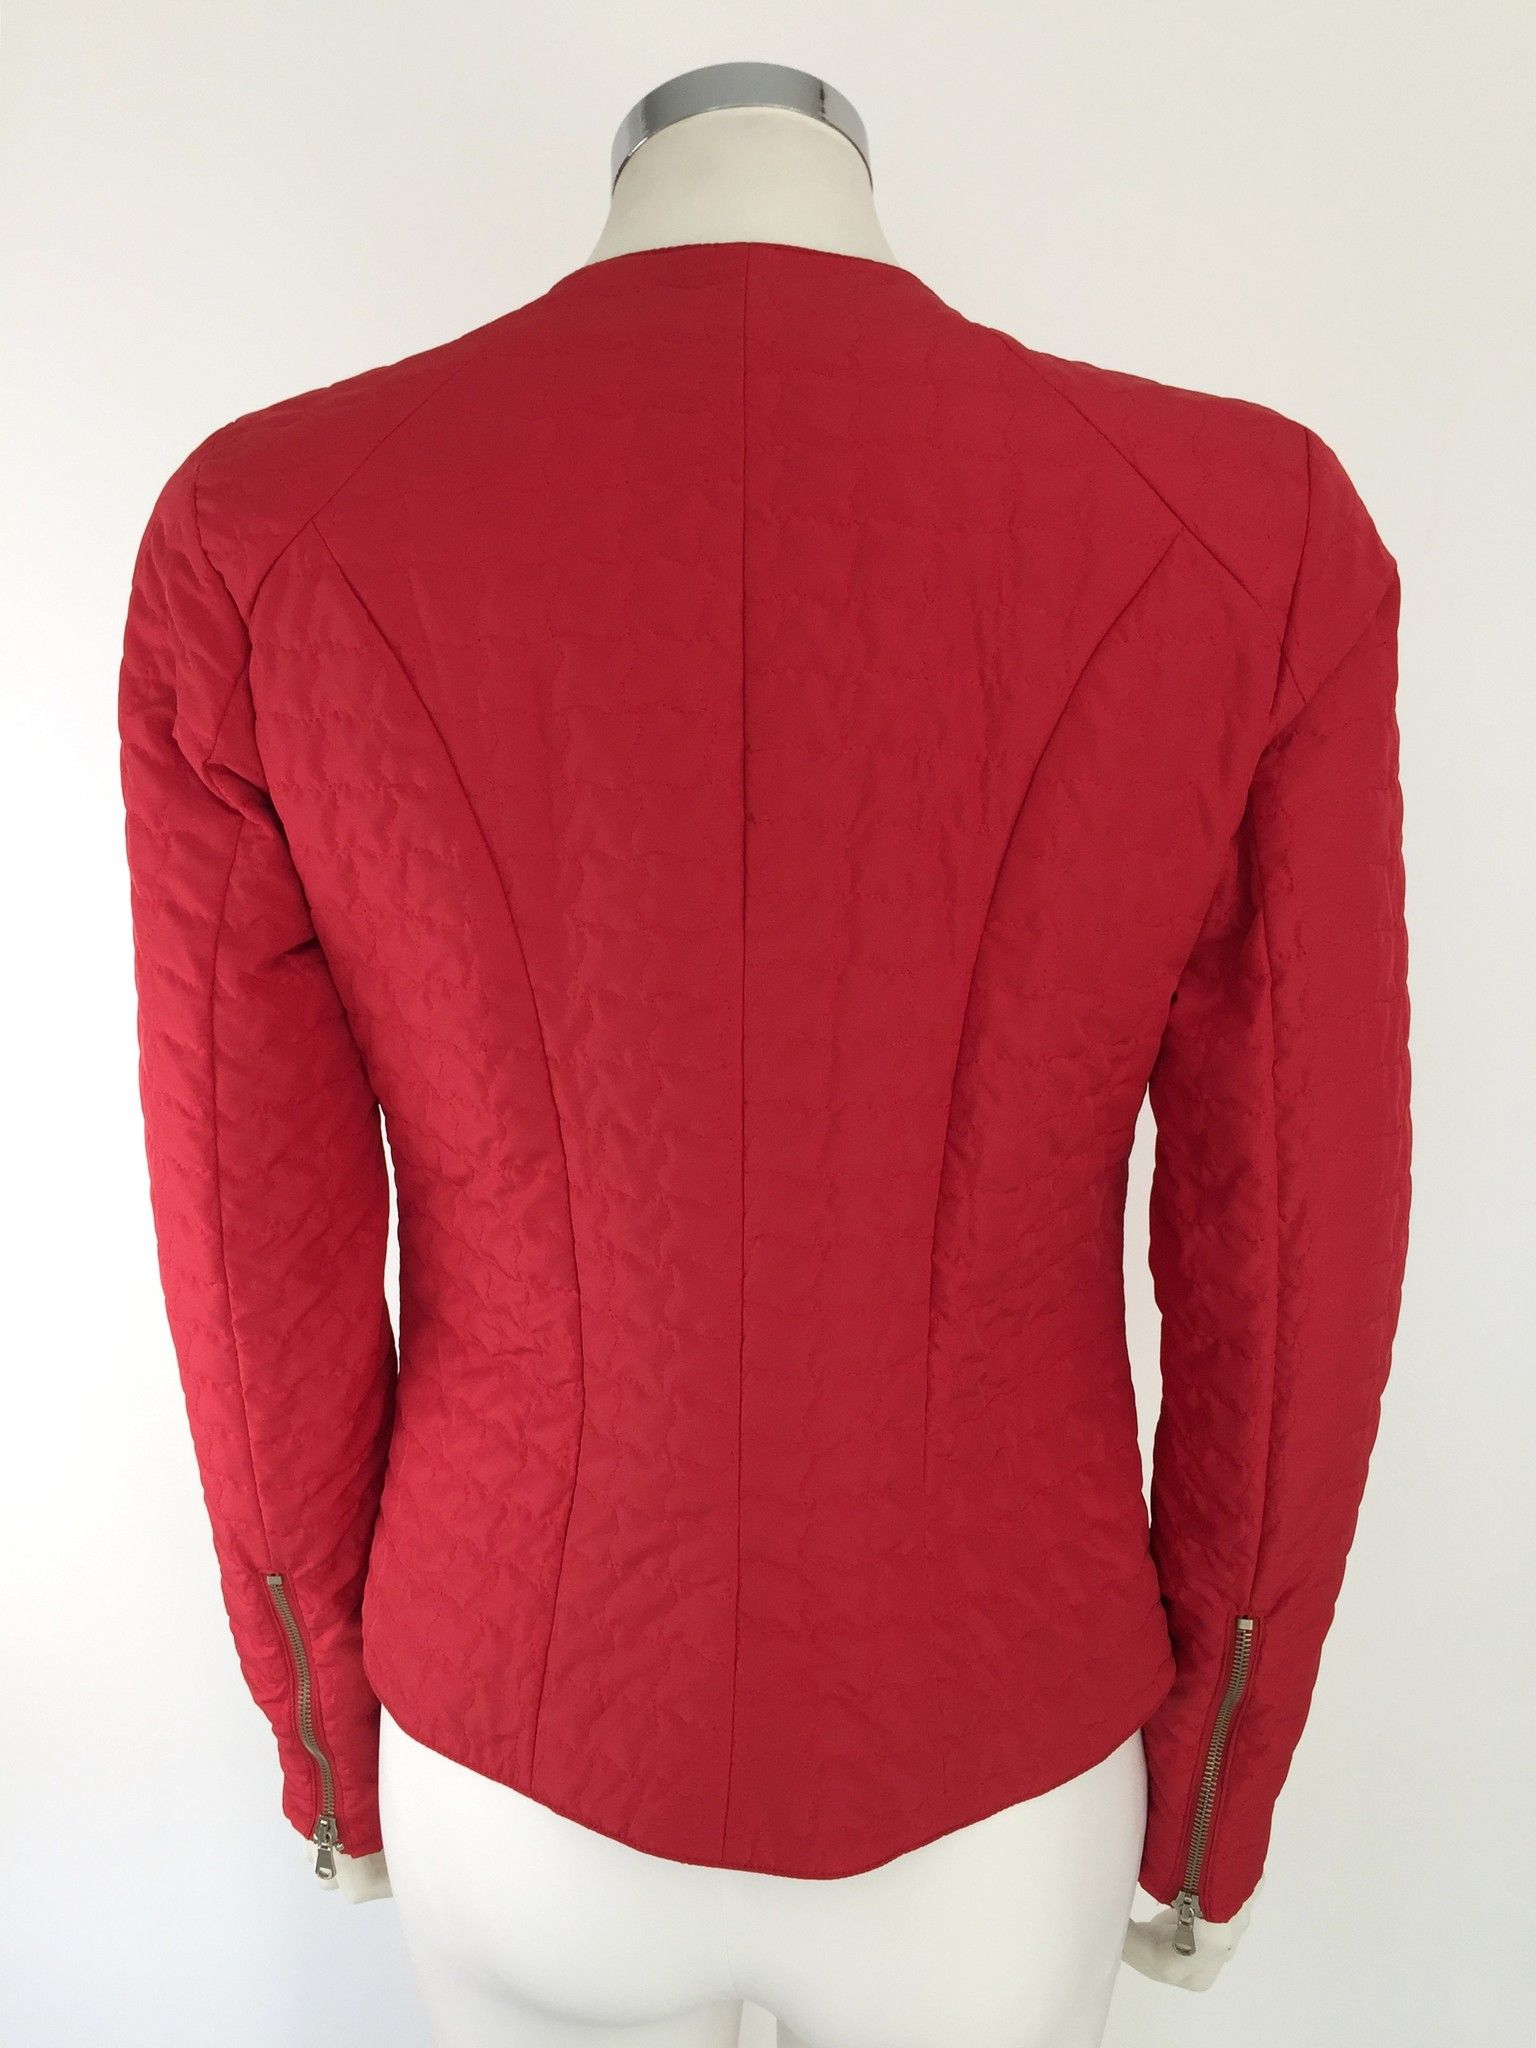 Adele Fado Quilted Jacket with Zippers Cod.CP116